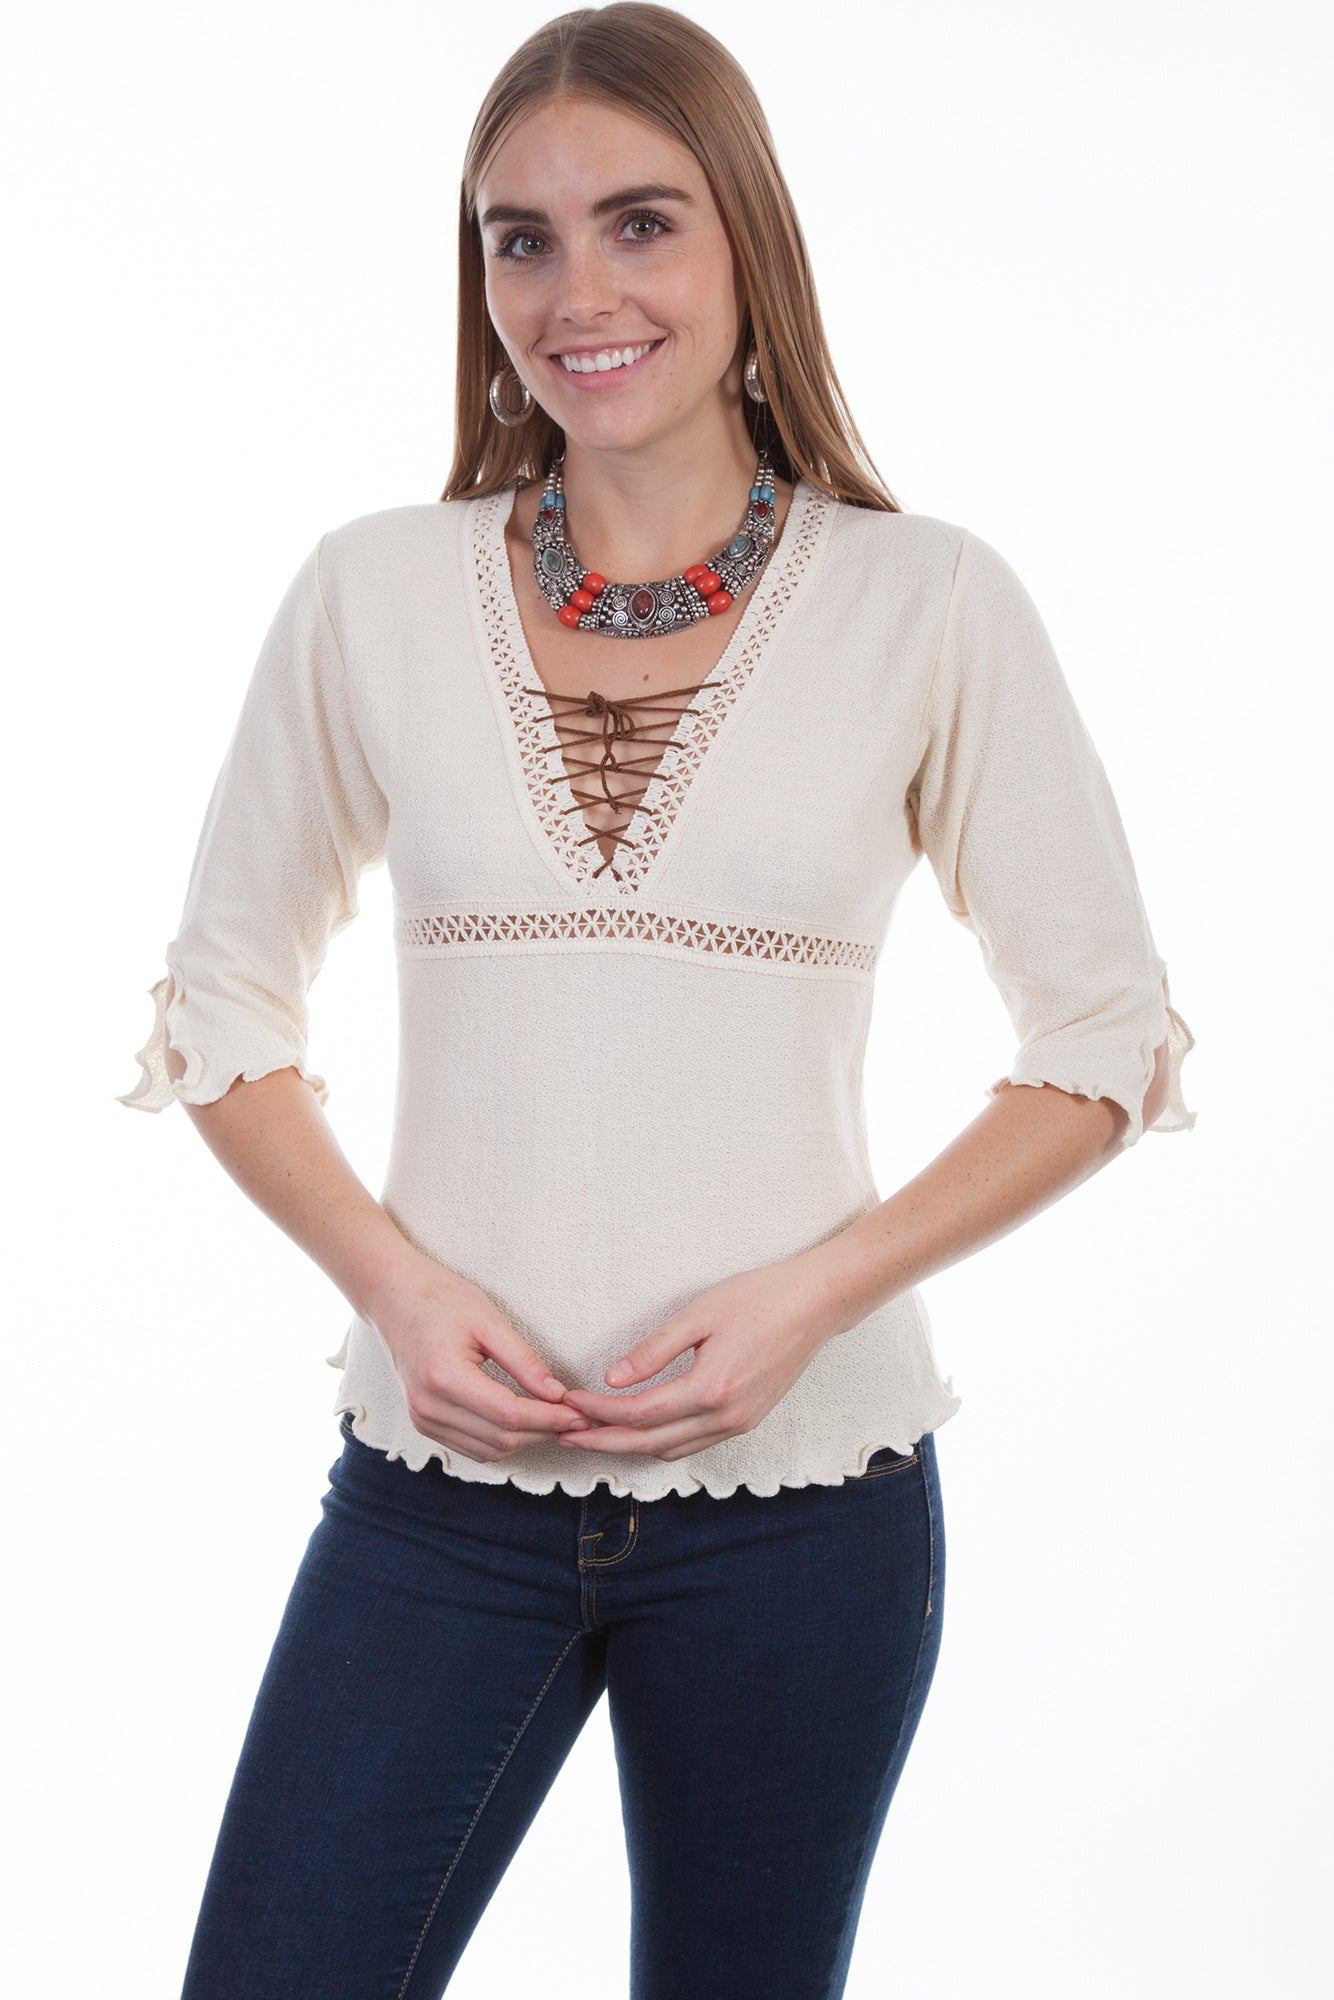 fcb673daccf5 Scully Womens Natural 100% Cotton Lace-Up S/S Blouse – The Western ...